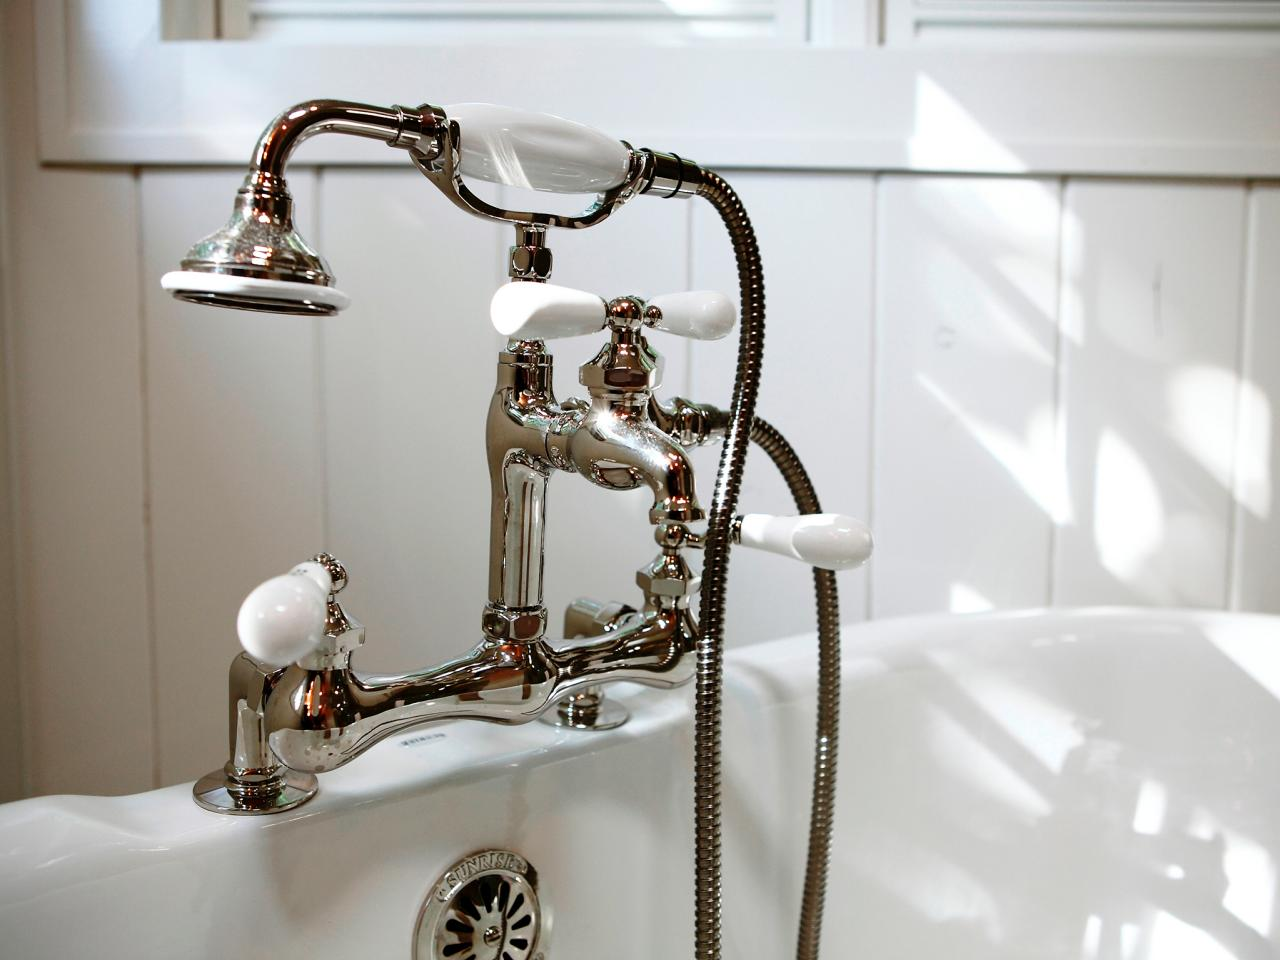 htm with faucets p clawfoot in handheld br mount edwardian tub shower faucet brushed nickel deck